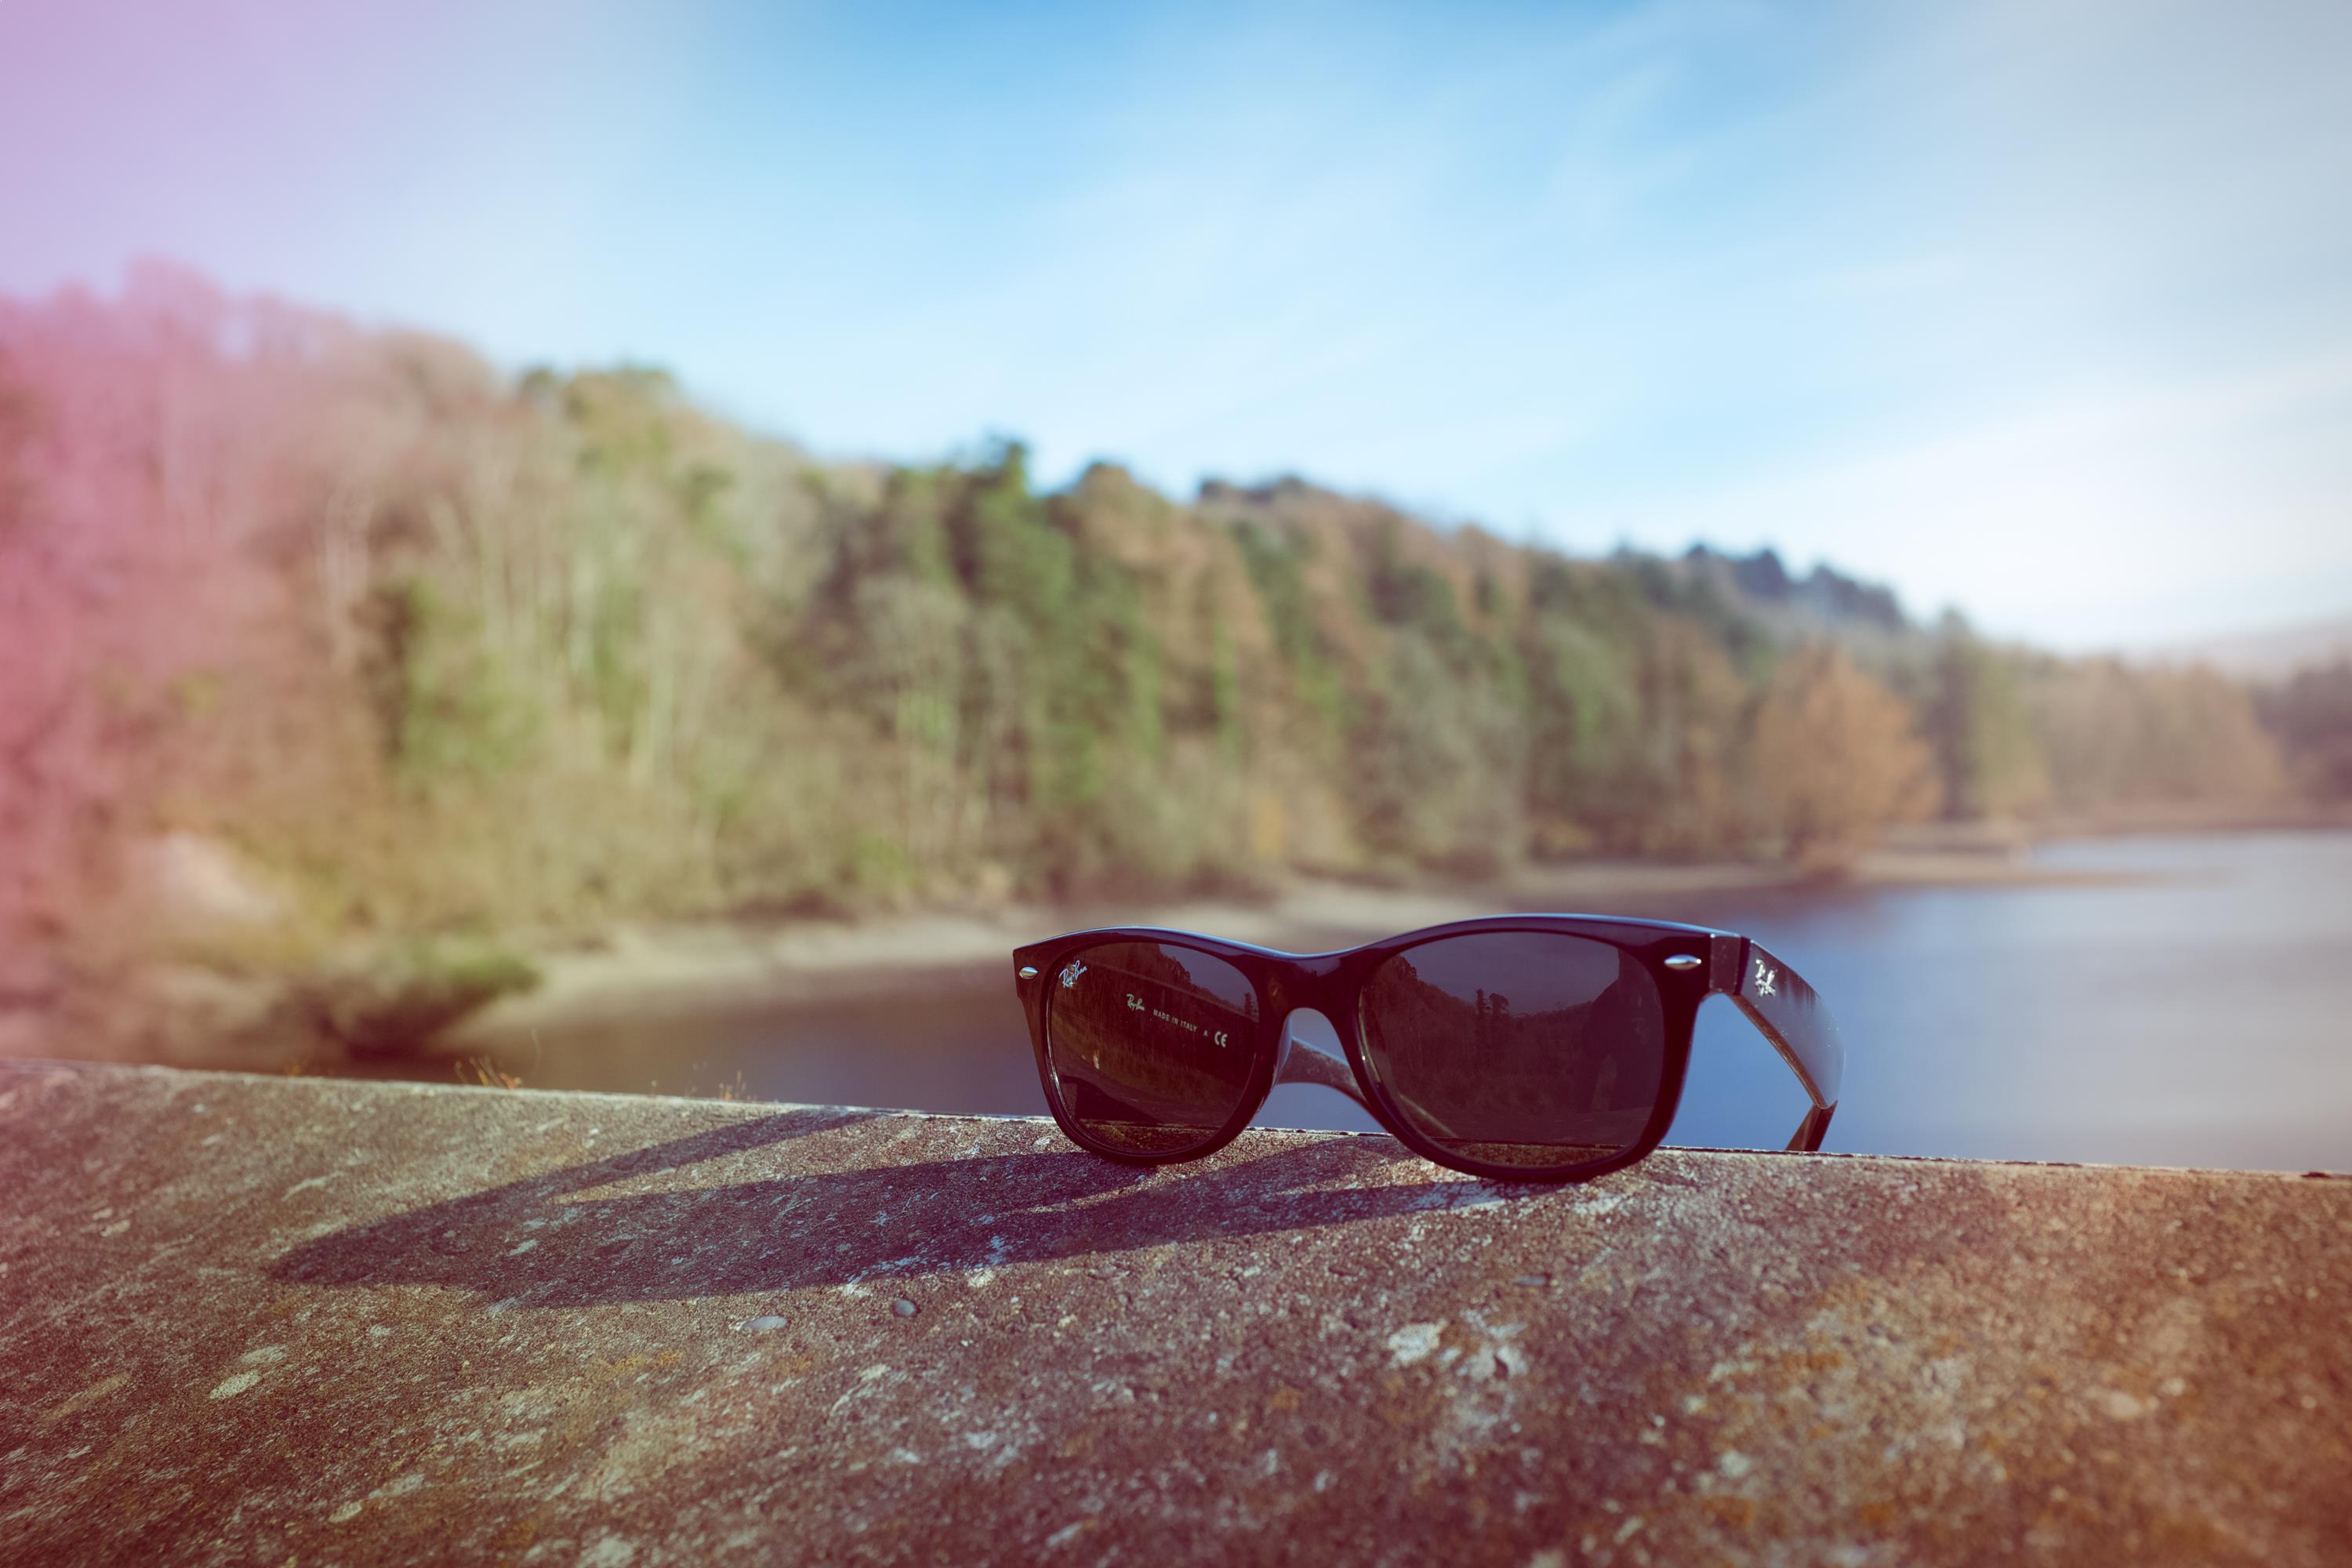 picography-sunglasses-sunlight-haze.jpg